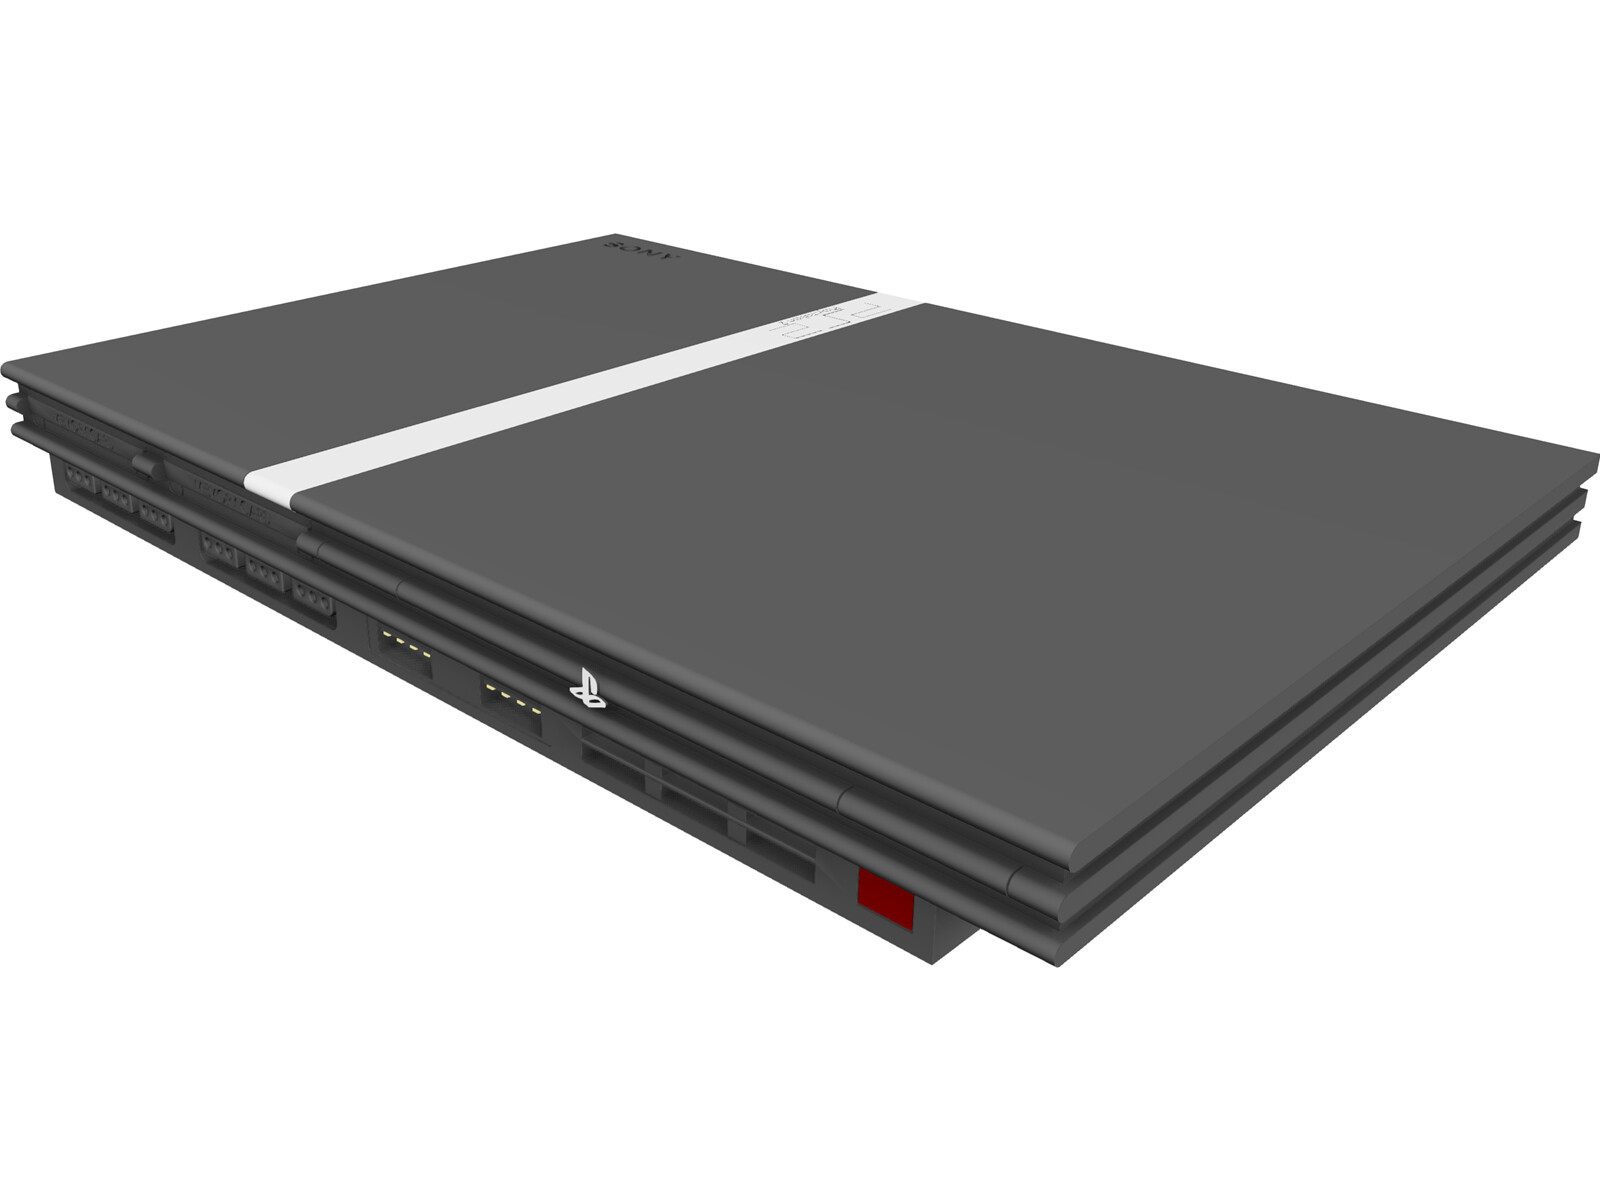 Sony Playstation 2 3D Model